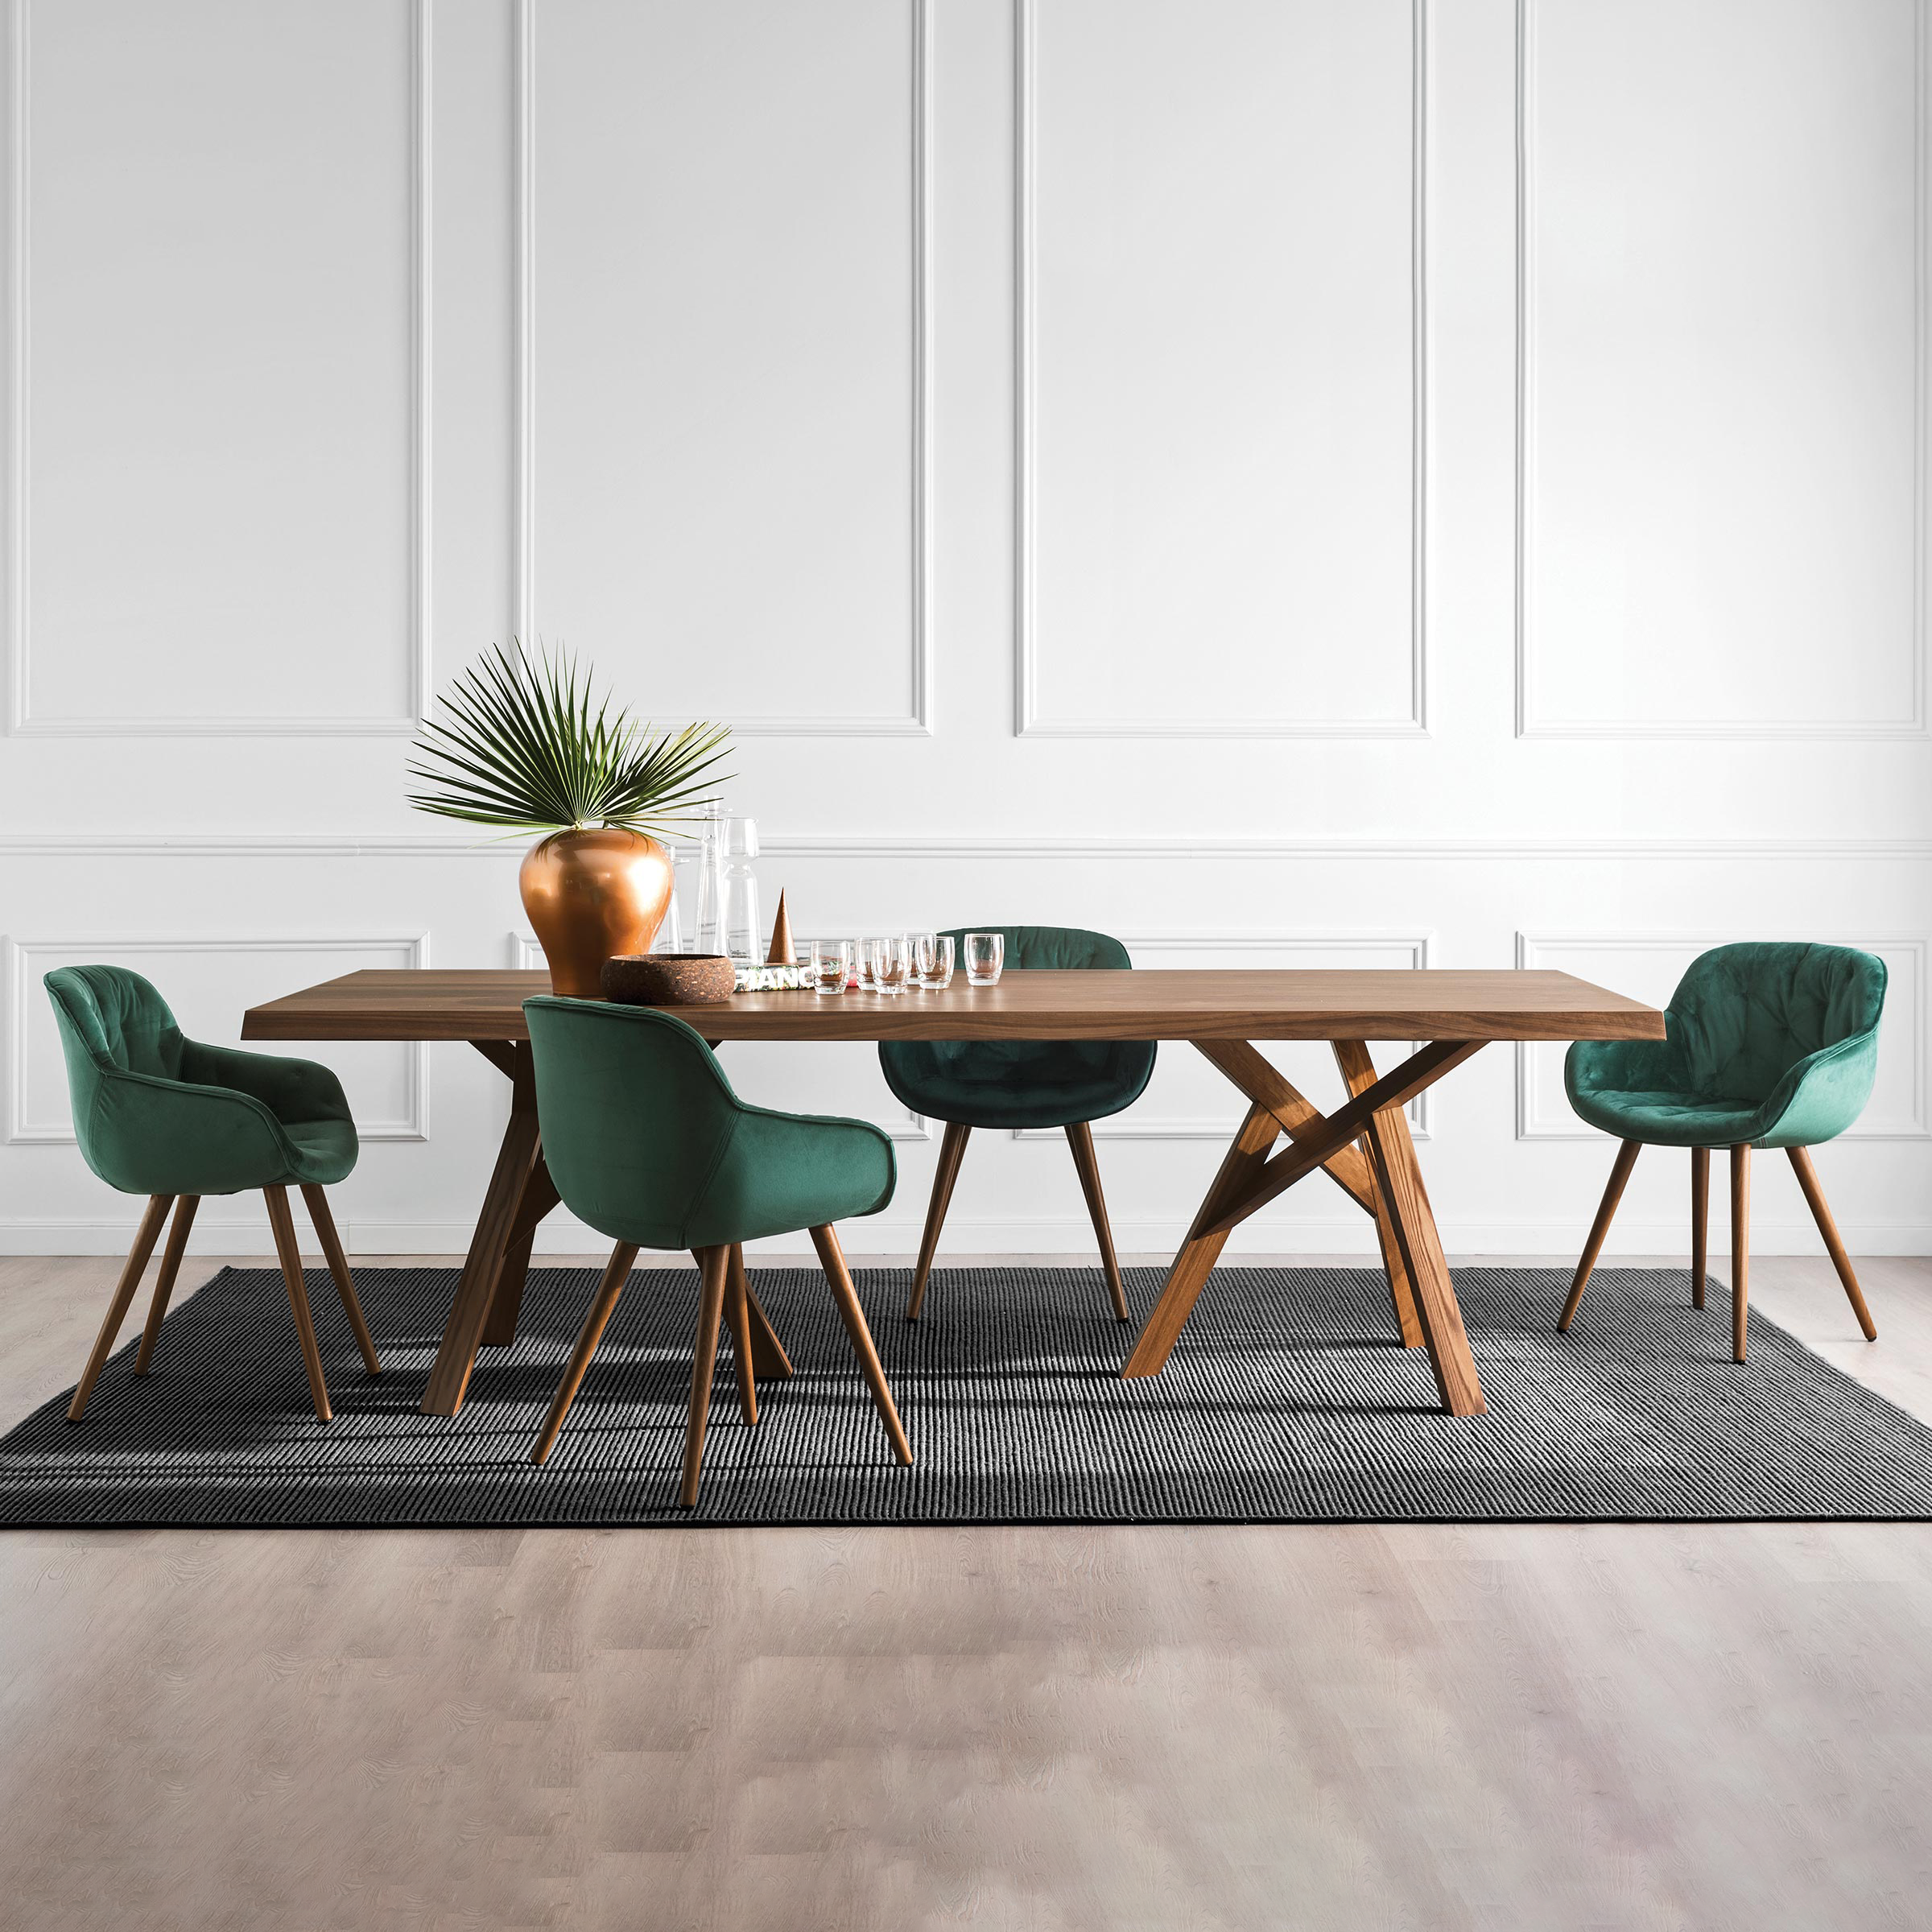 calligaris_igloo_soft_dining_chair_staged.png